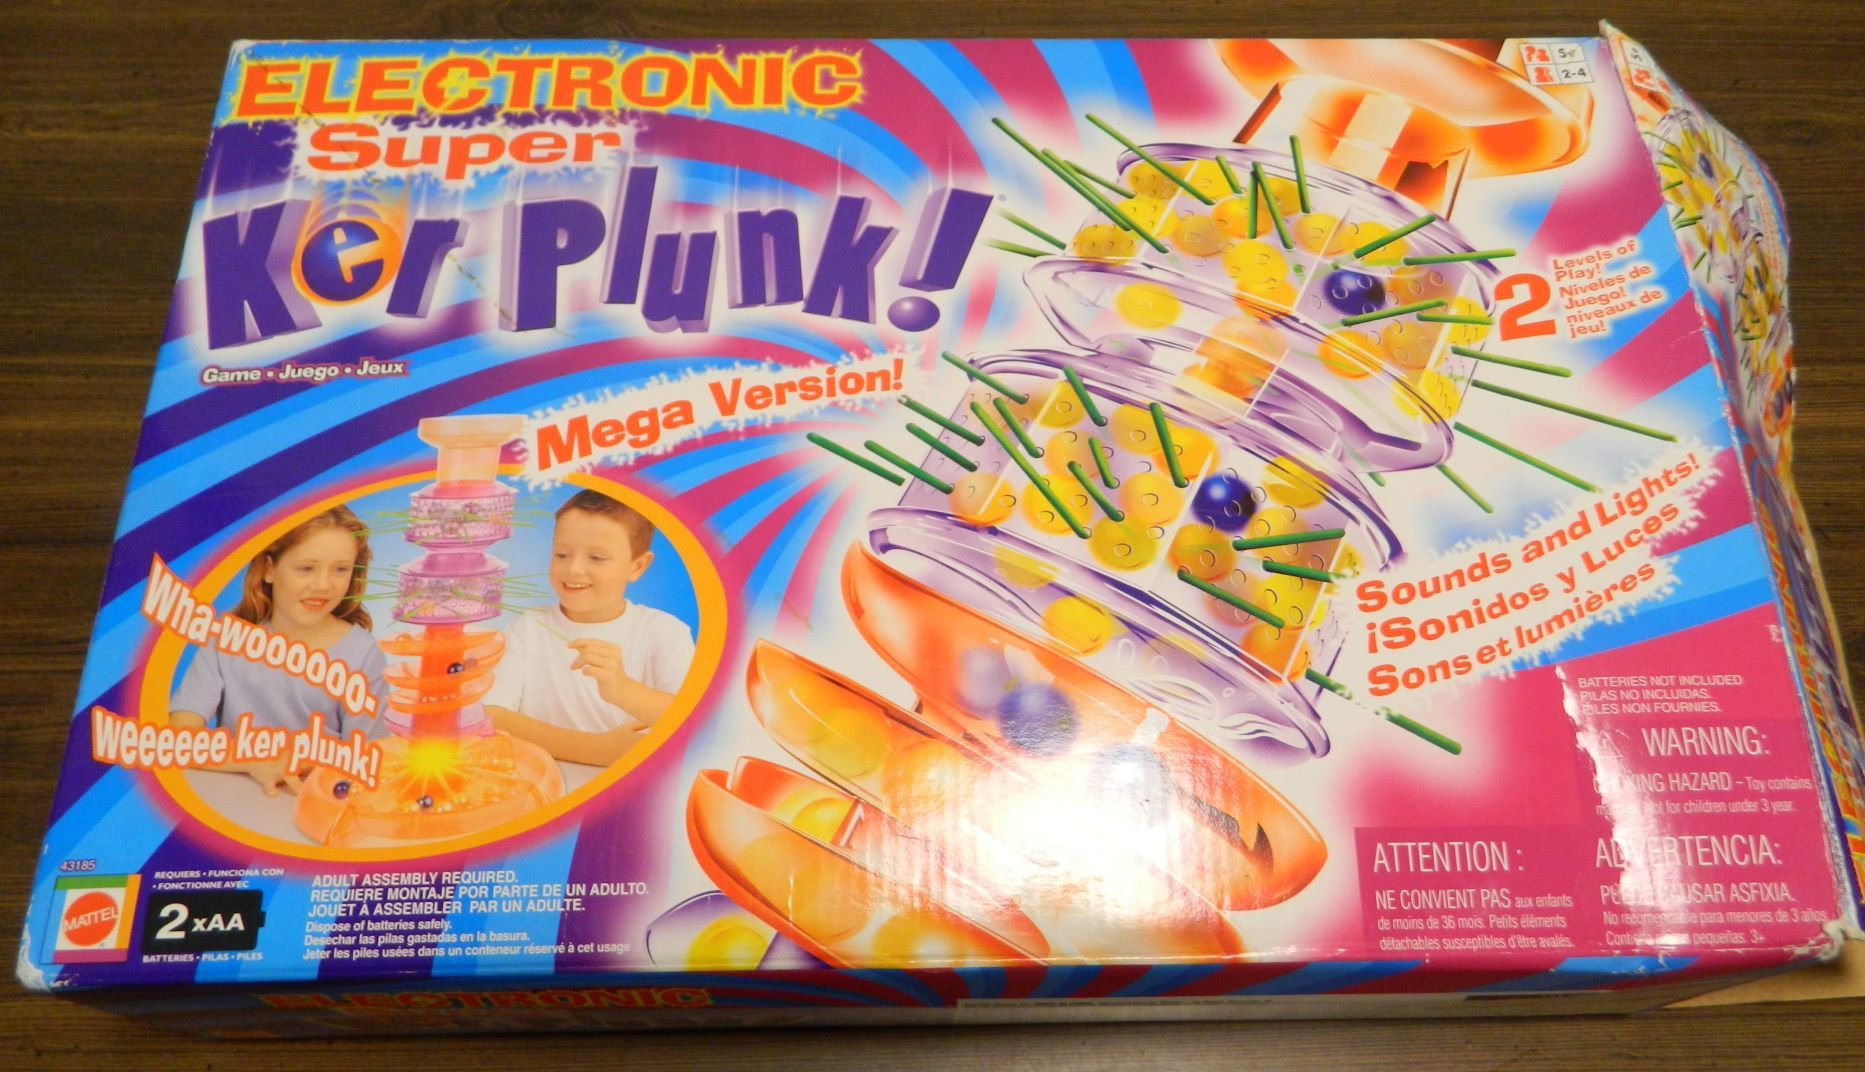 Electronic Super Kerplunk Box